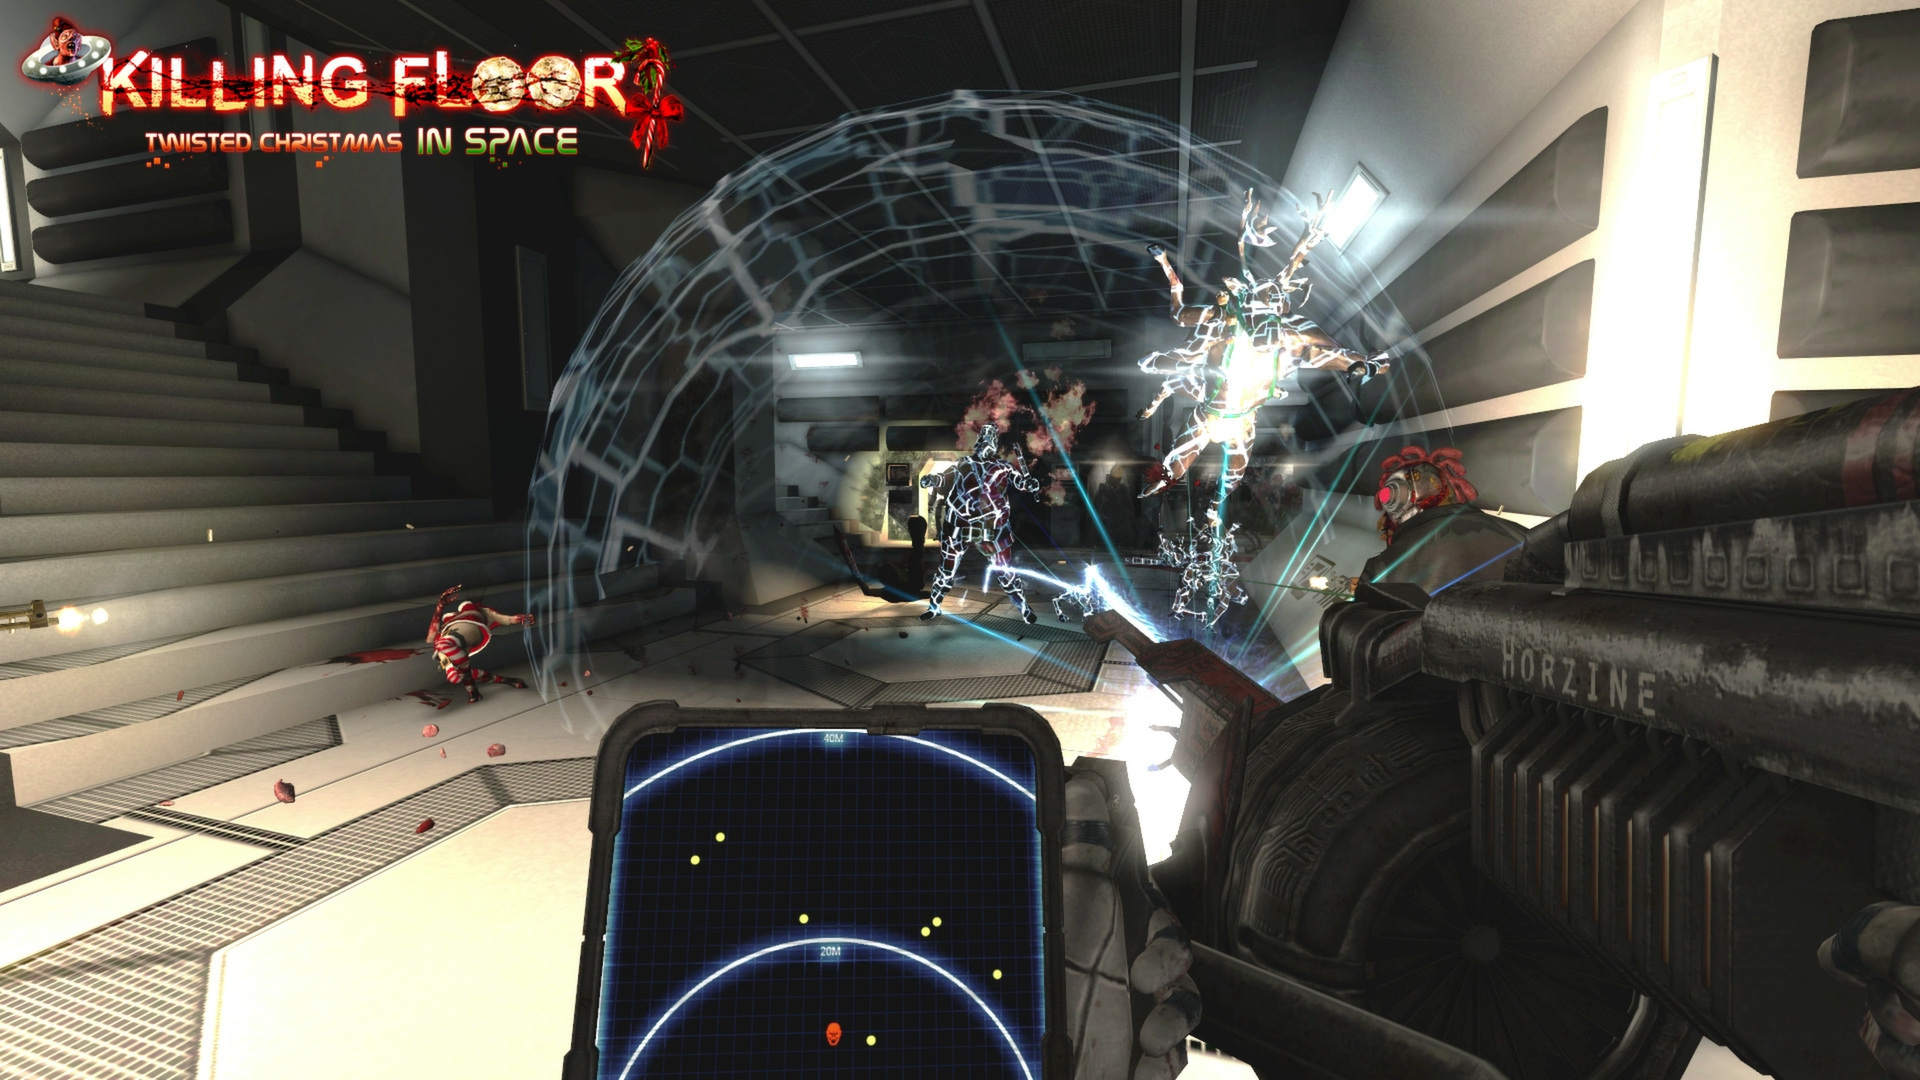 Killing floor unlock characters hack for Killing floor hacks